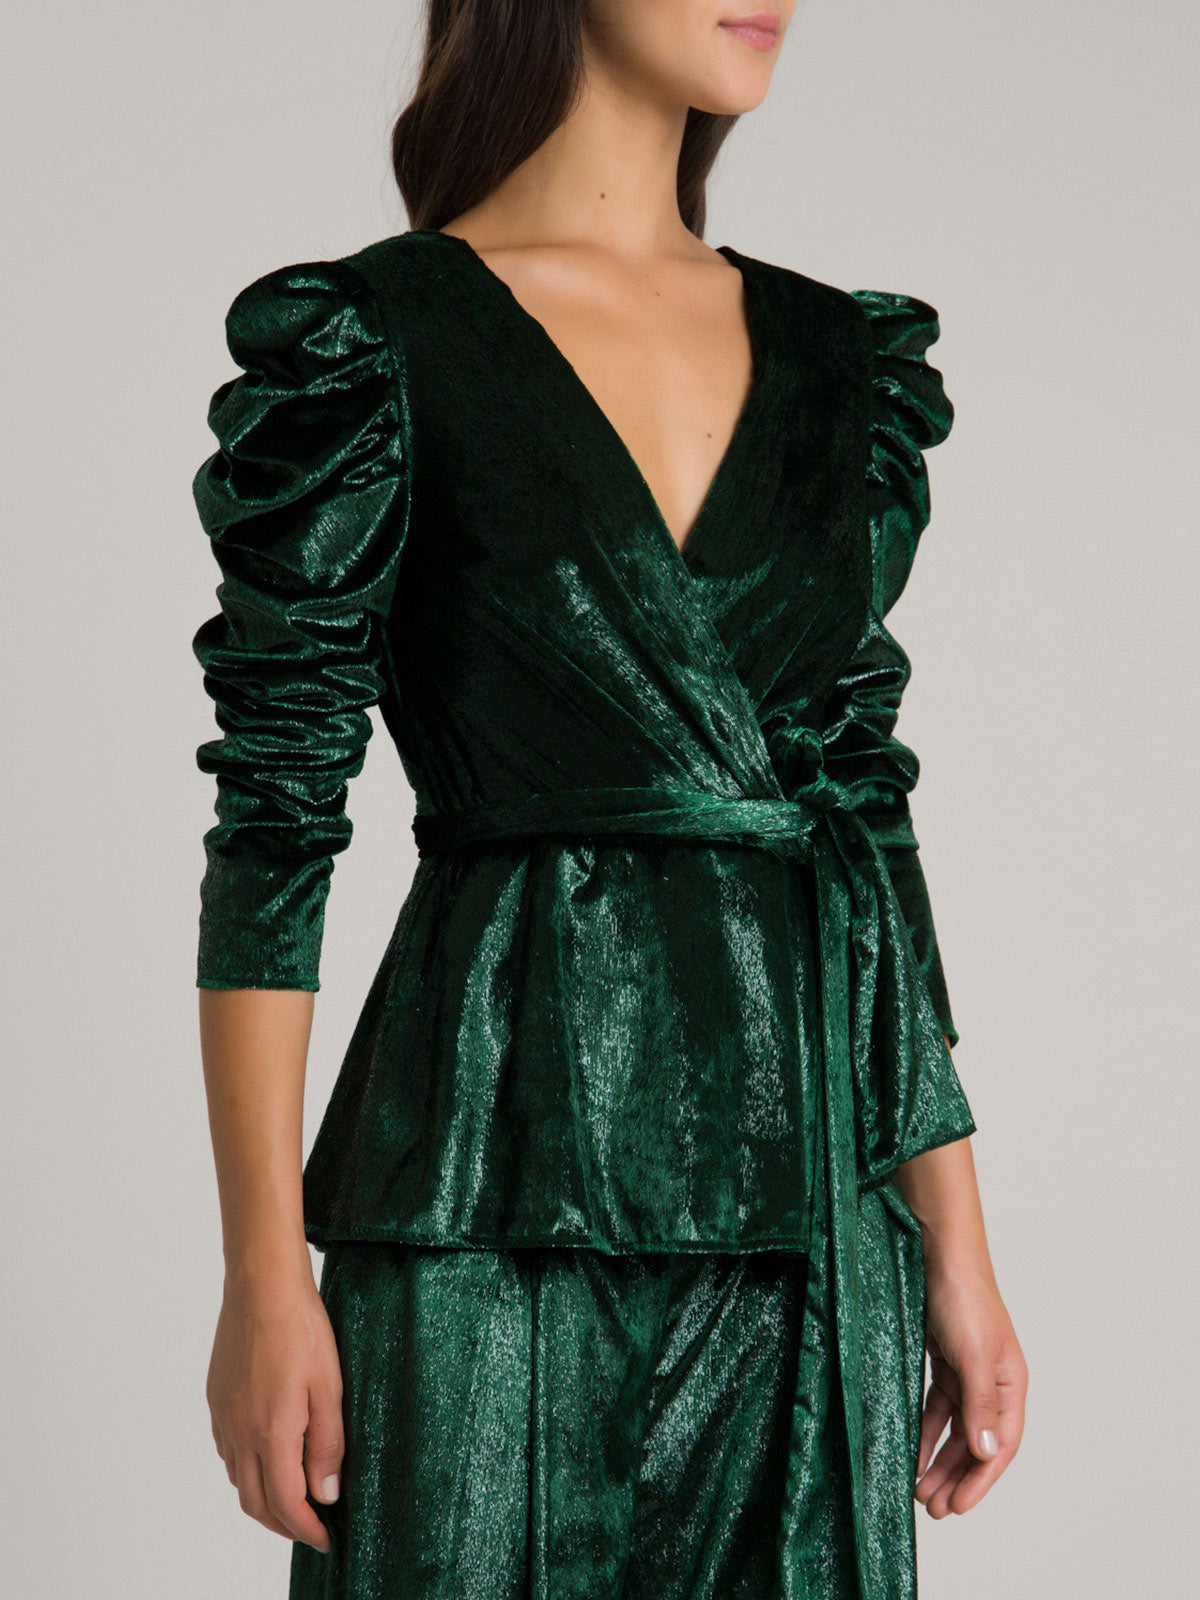 Liquid Velvet Puff Sleeve Wrap Top | Emerald Liquid Velvet Puff Sleeve Wrap Top | Emerald